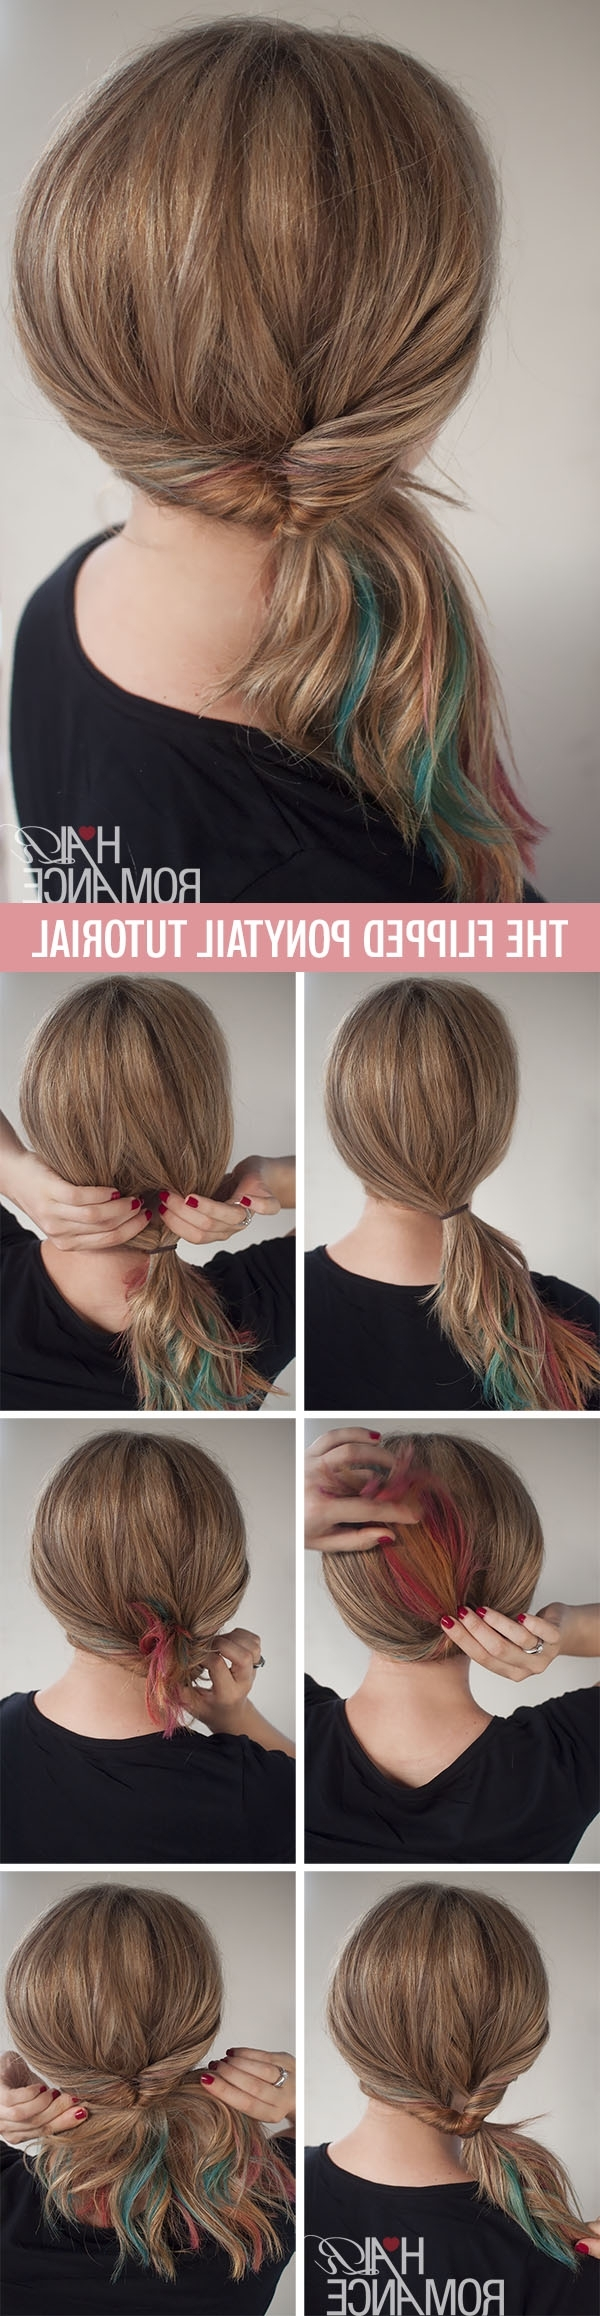 Get Cute Hair In Less Than 1 Minute – The Flipped Ponytail Hairstyle Intended For Newest Low Twisted Flip In Ponytail Hairstyles (Gallery 7 of 20)